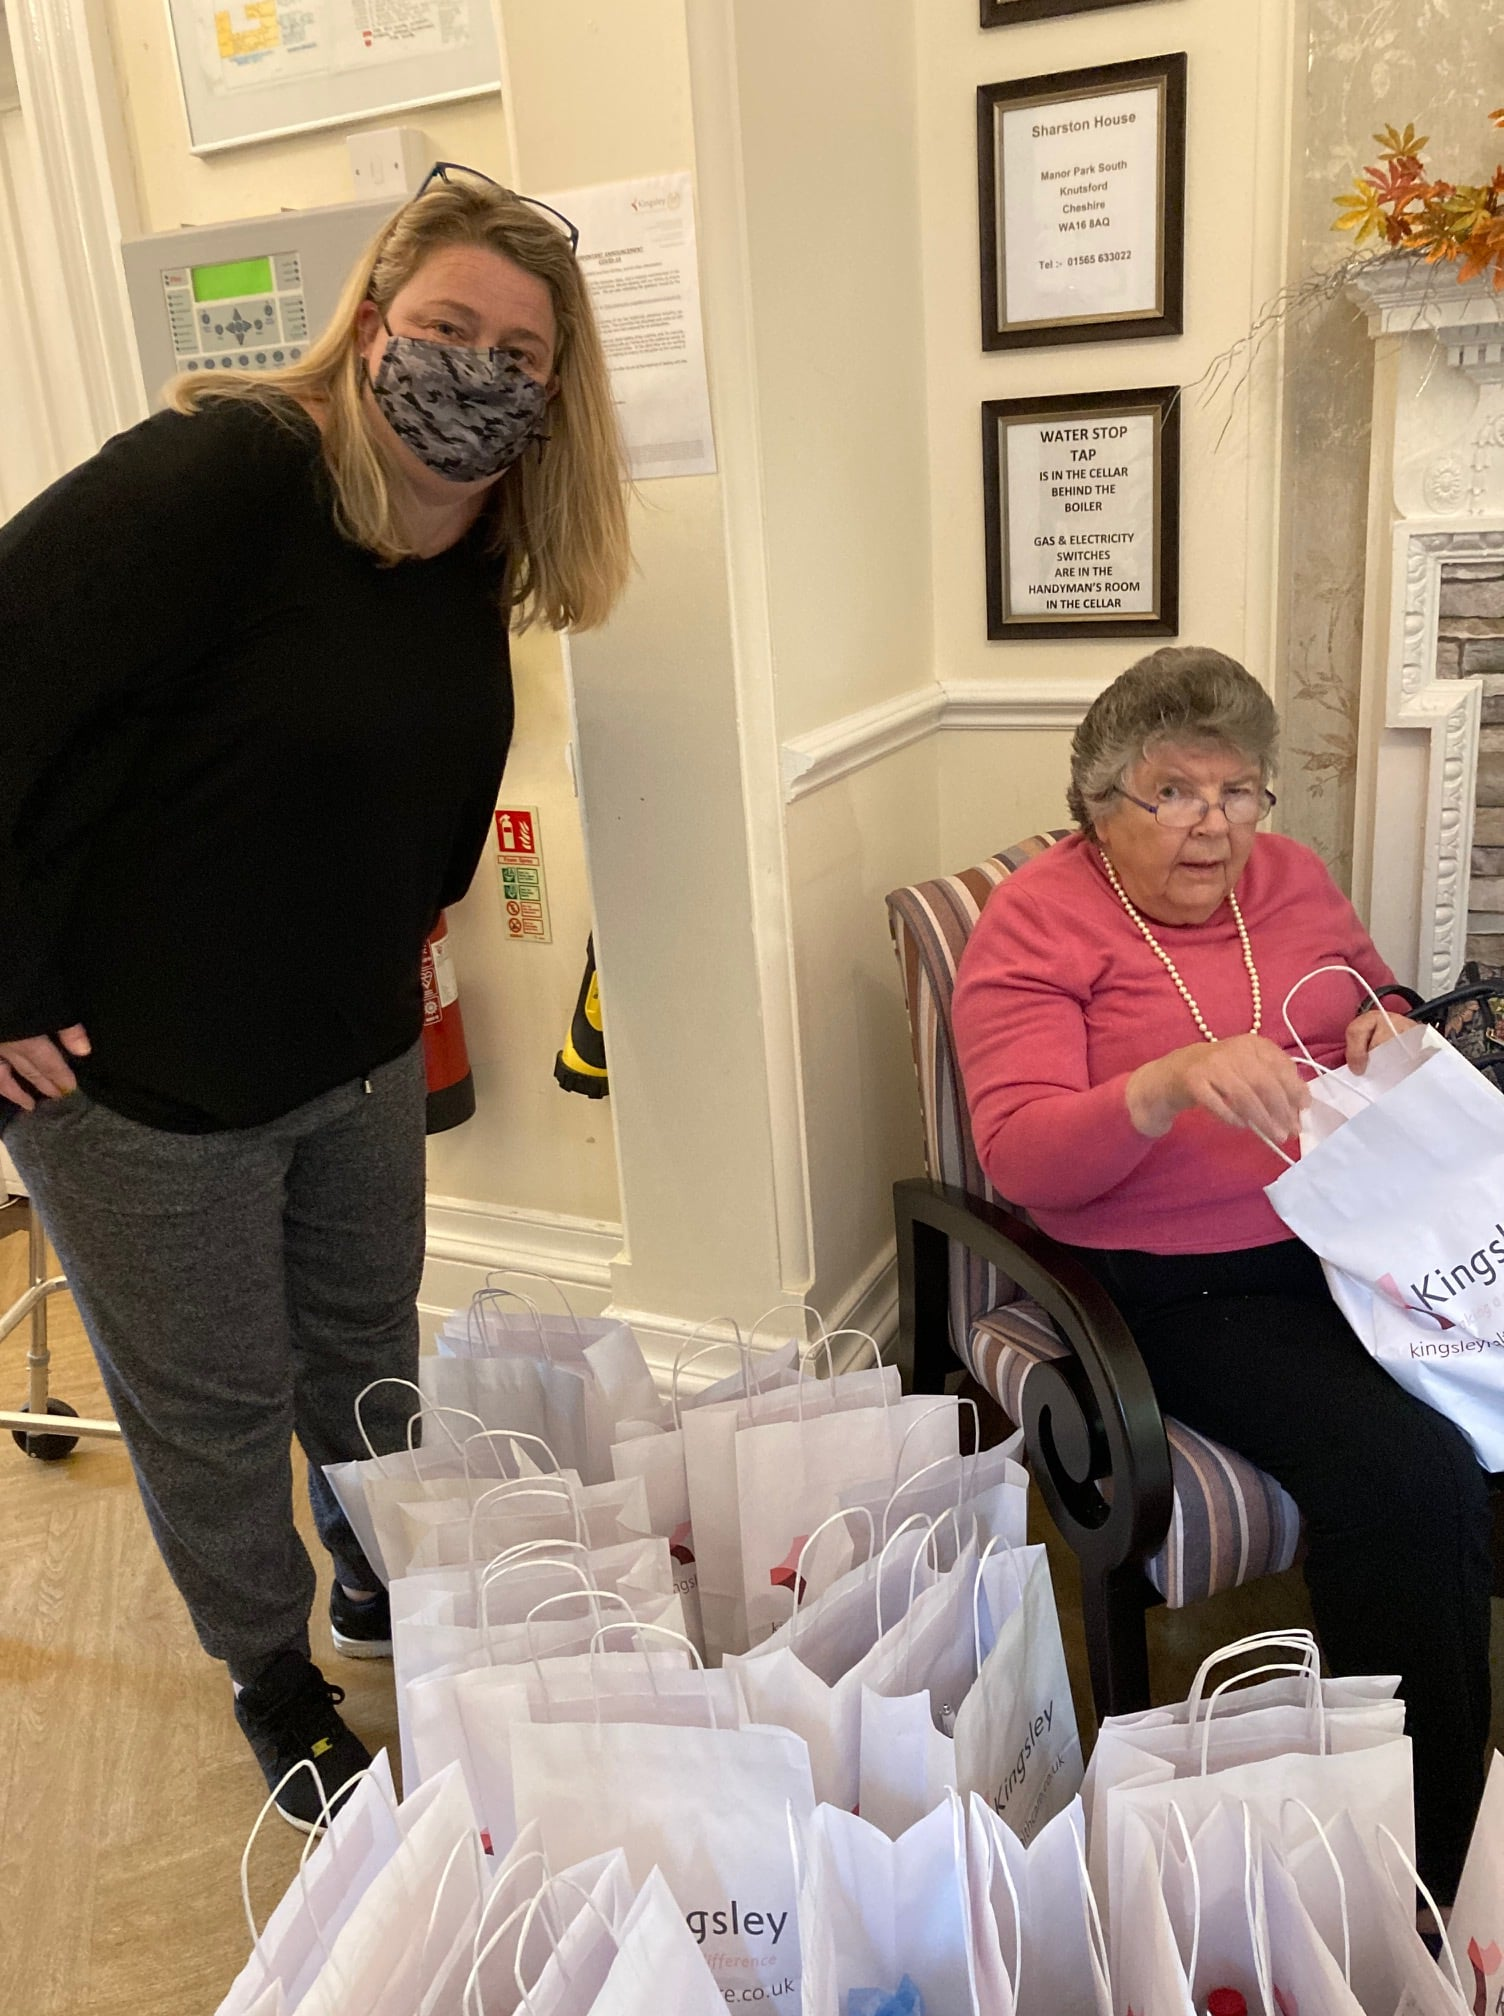 Sharston House Nursing Home presented food bags to the Wilmslow Food Friend project